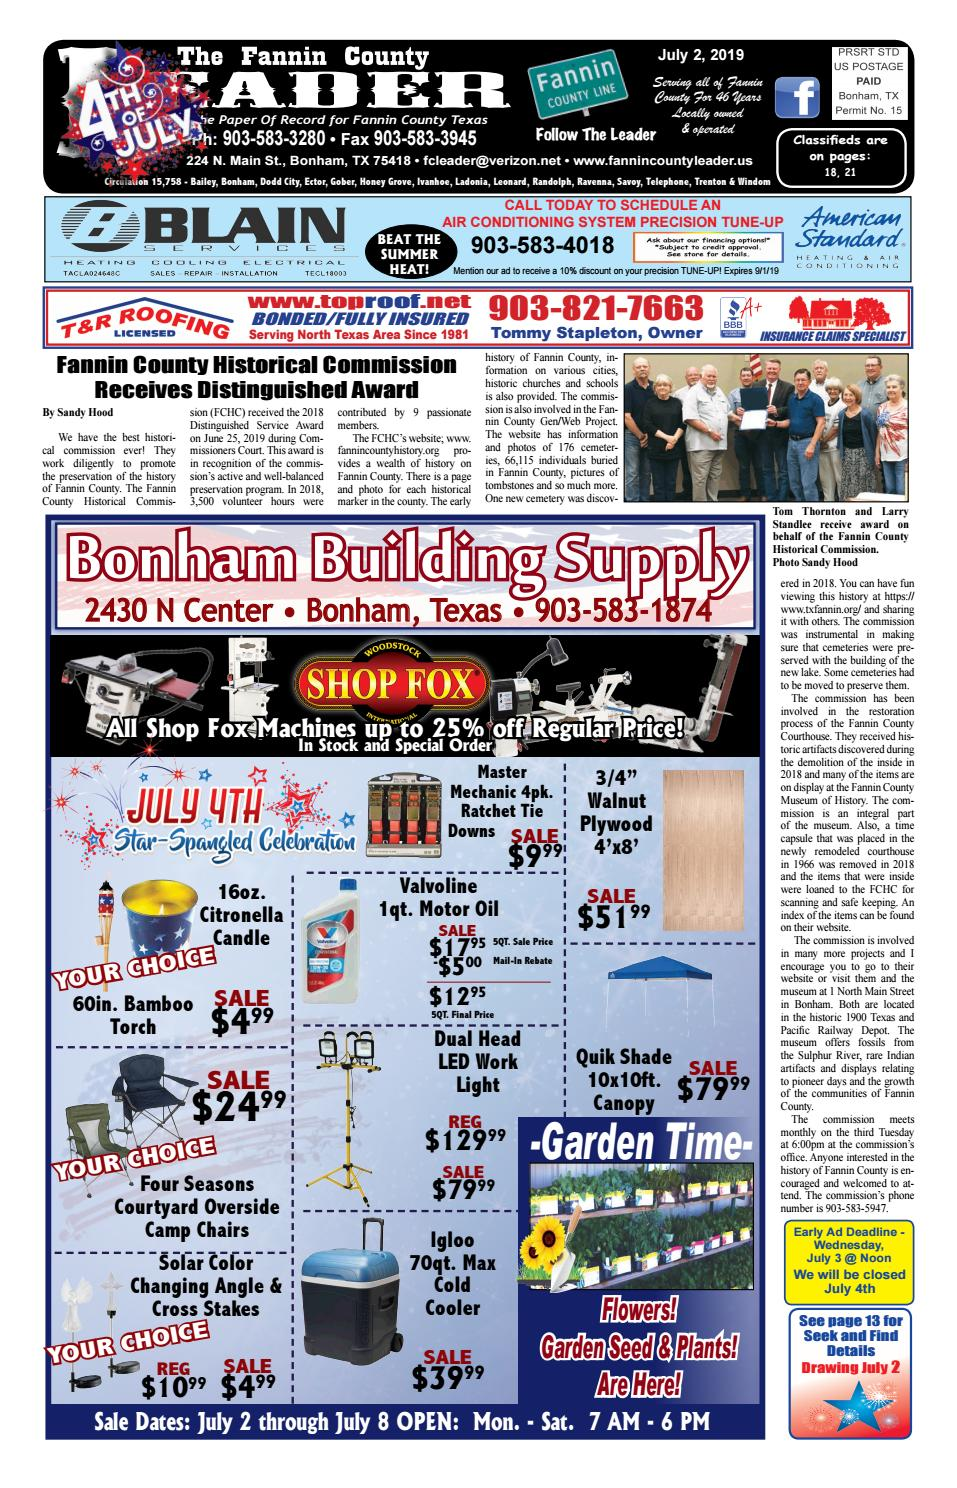 7-2-19 Leader E-Edition by The Fannin County Leader - issuu